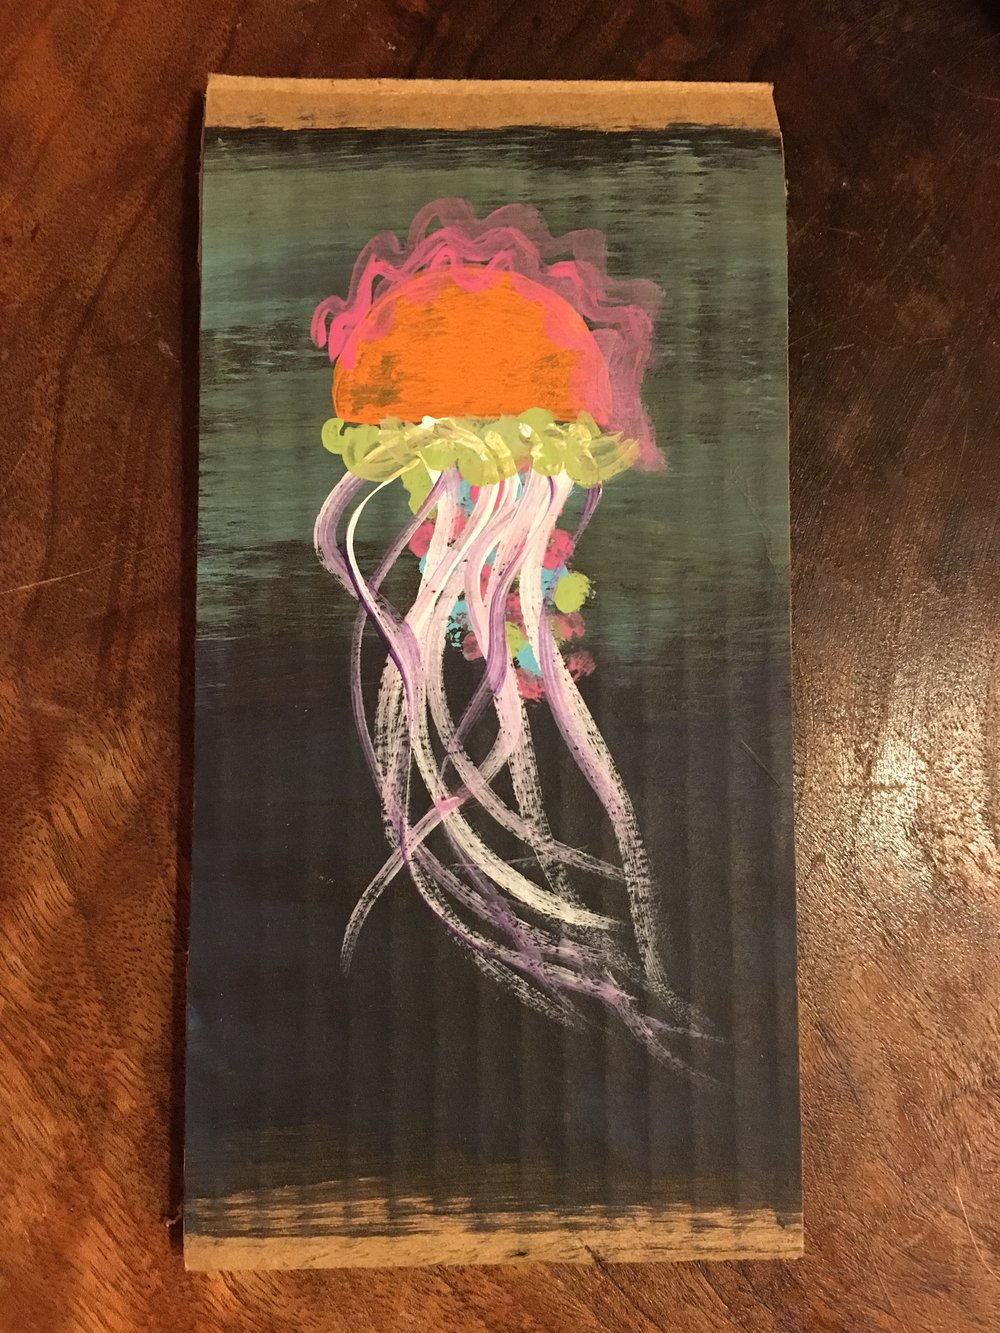 Jelly.  Acrylic on cardboard